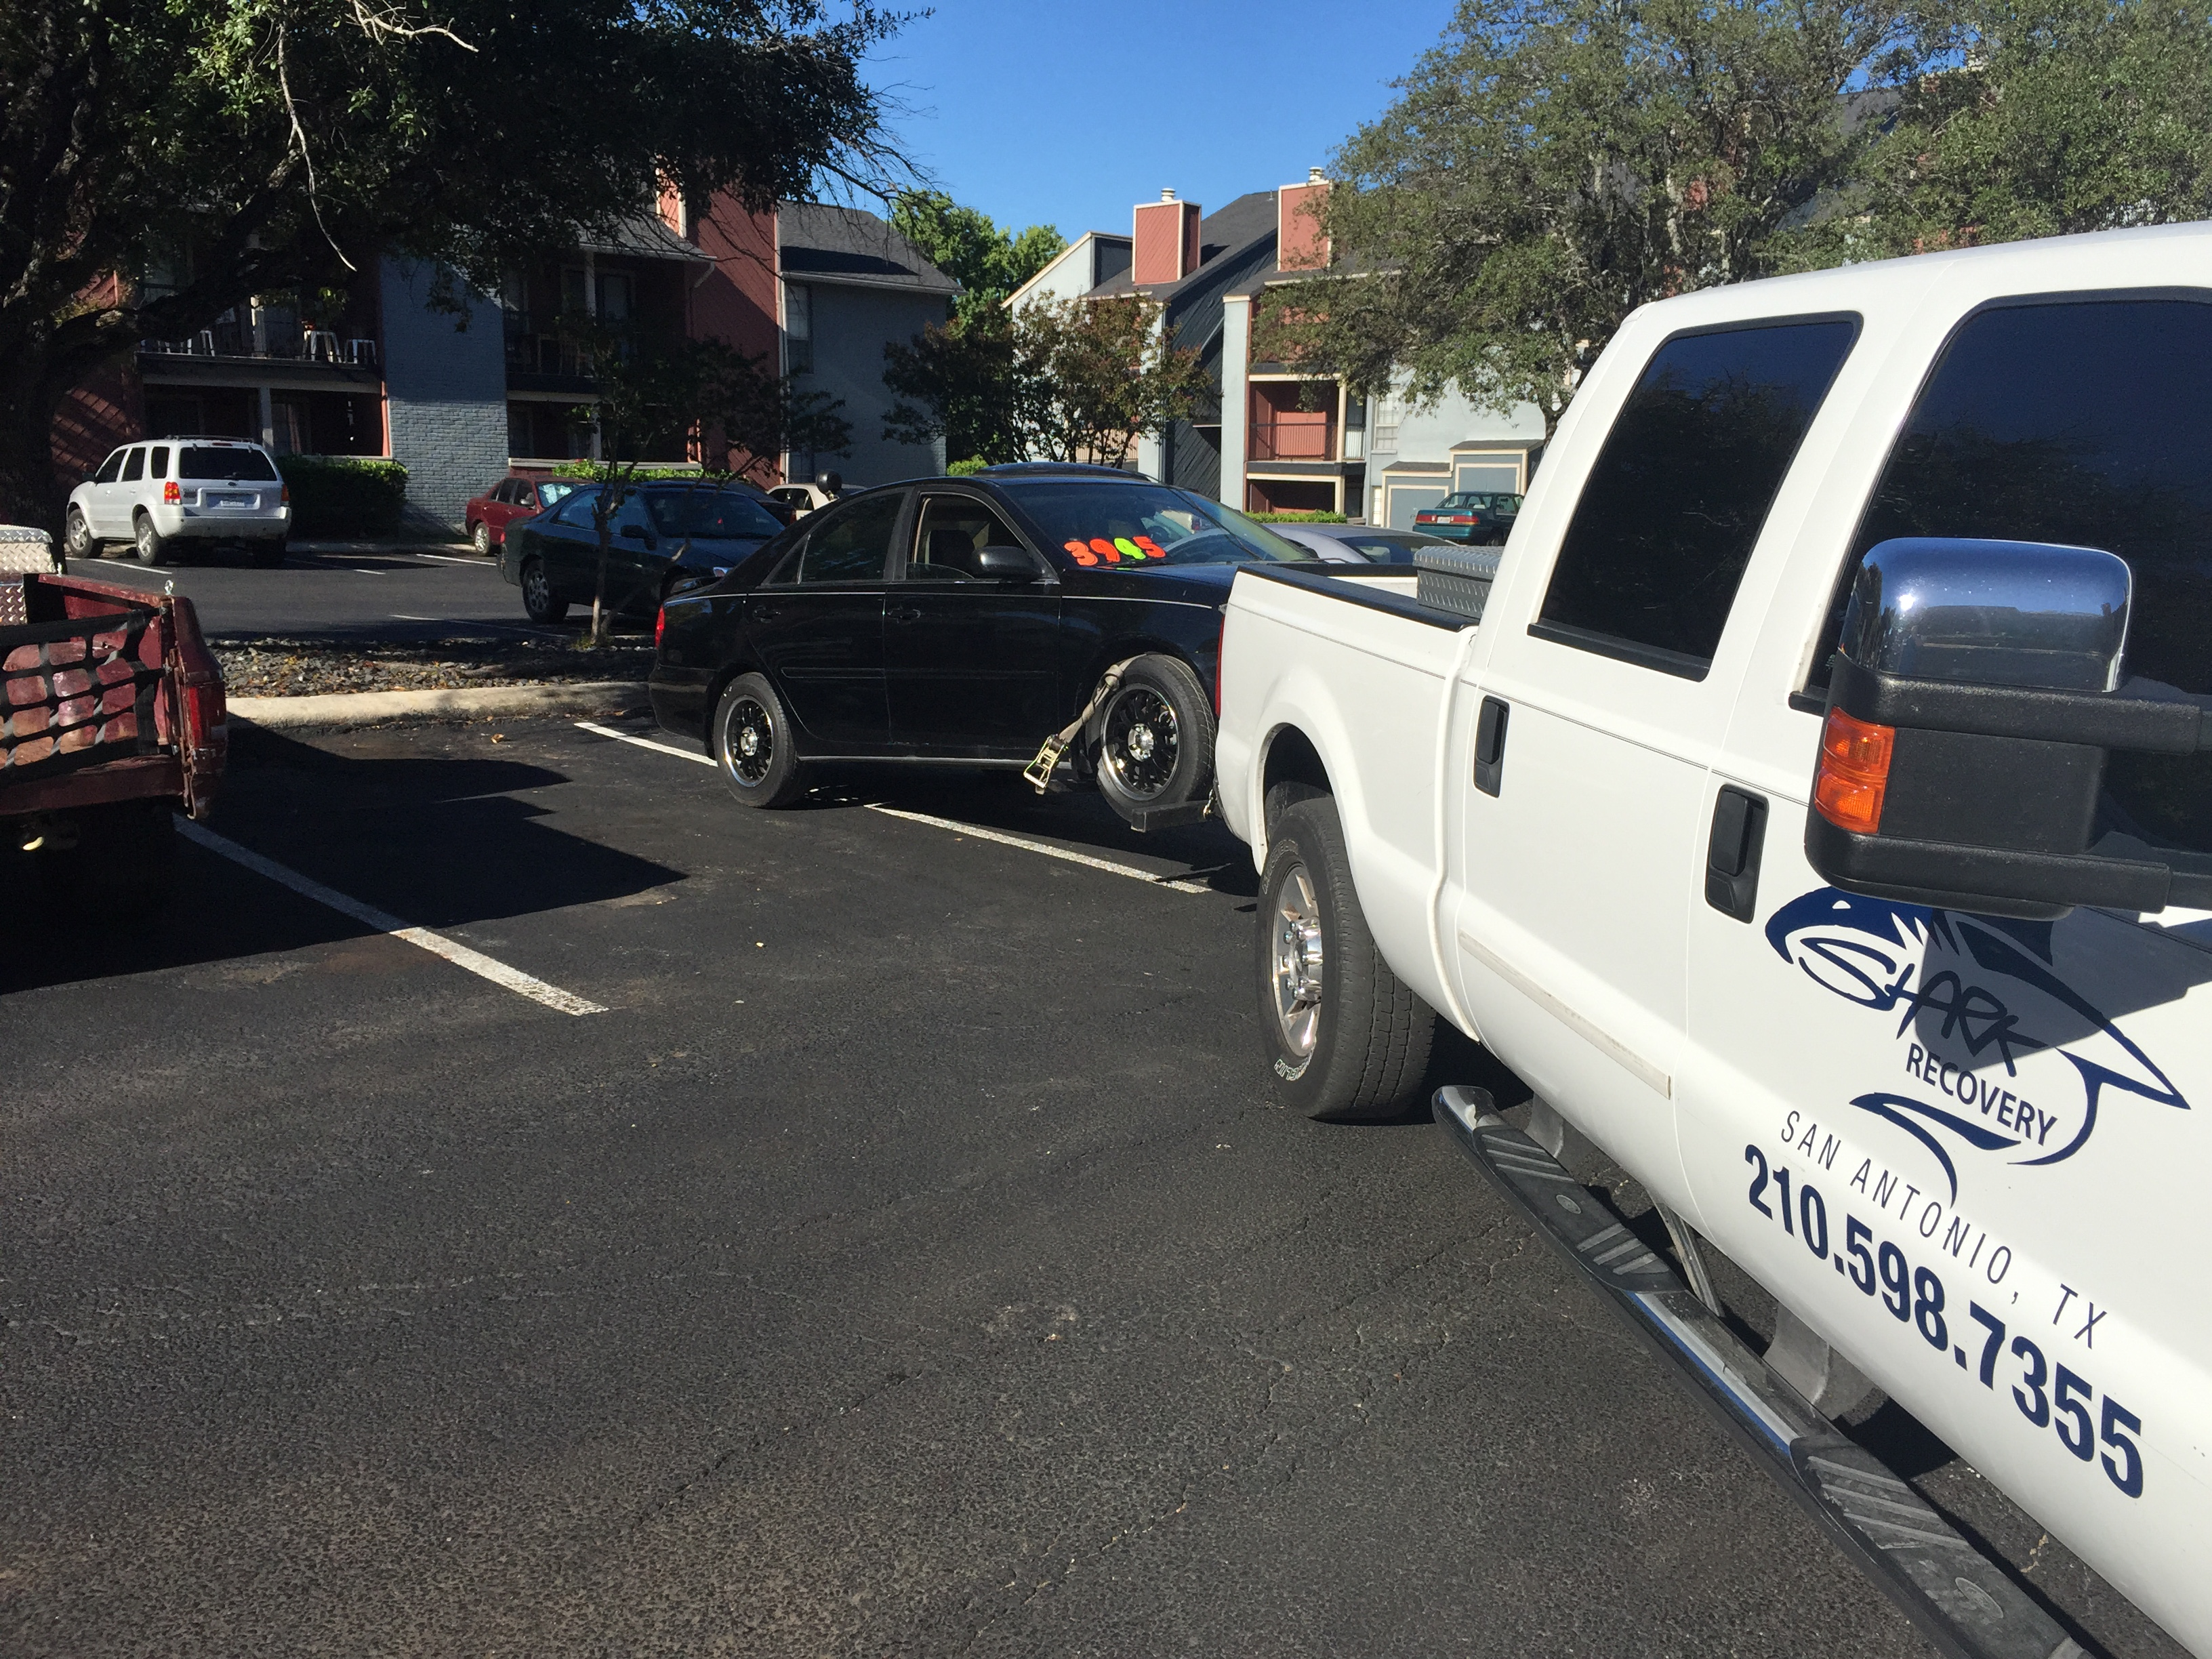 Tow truck. Cost of calling a tow truck 41